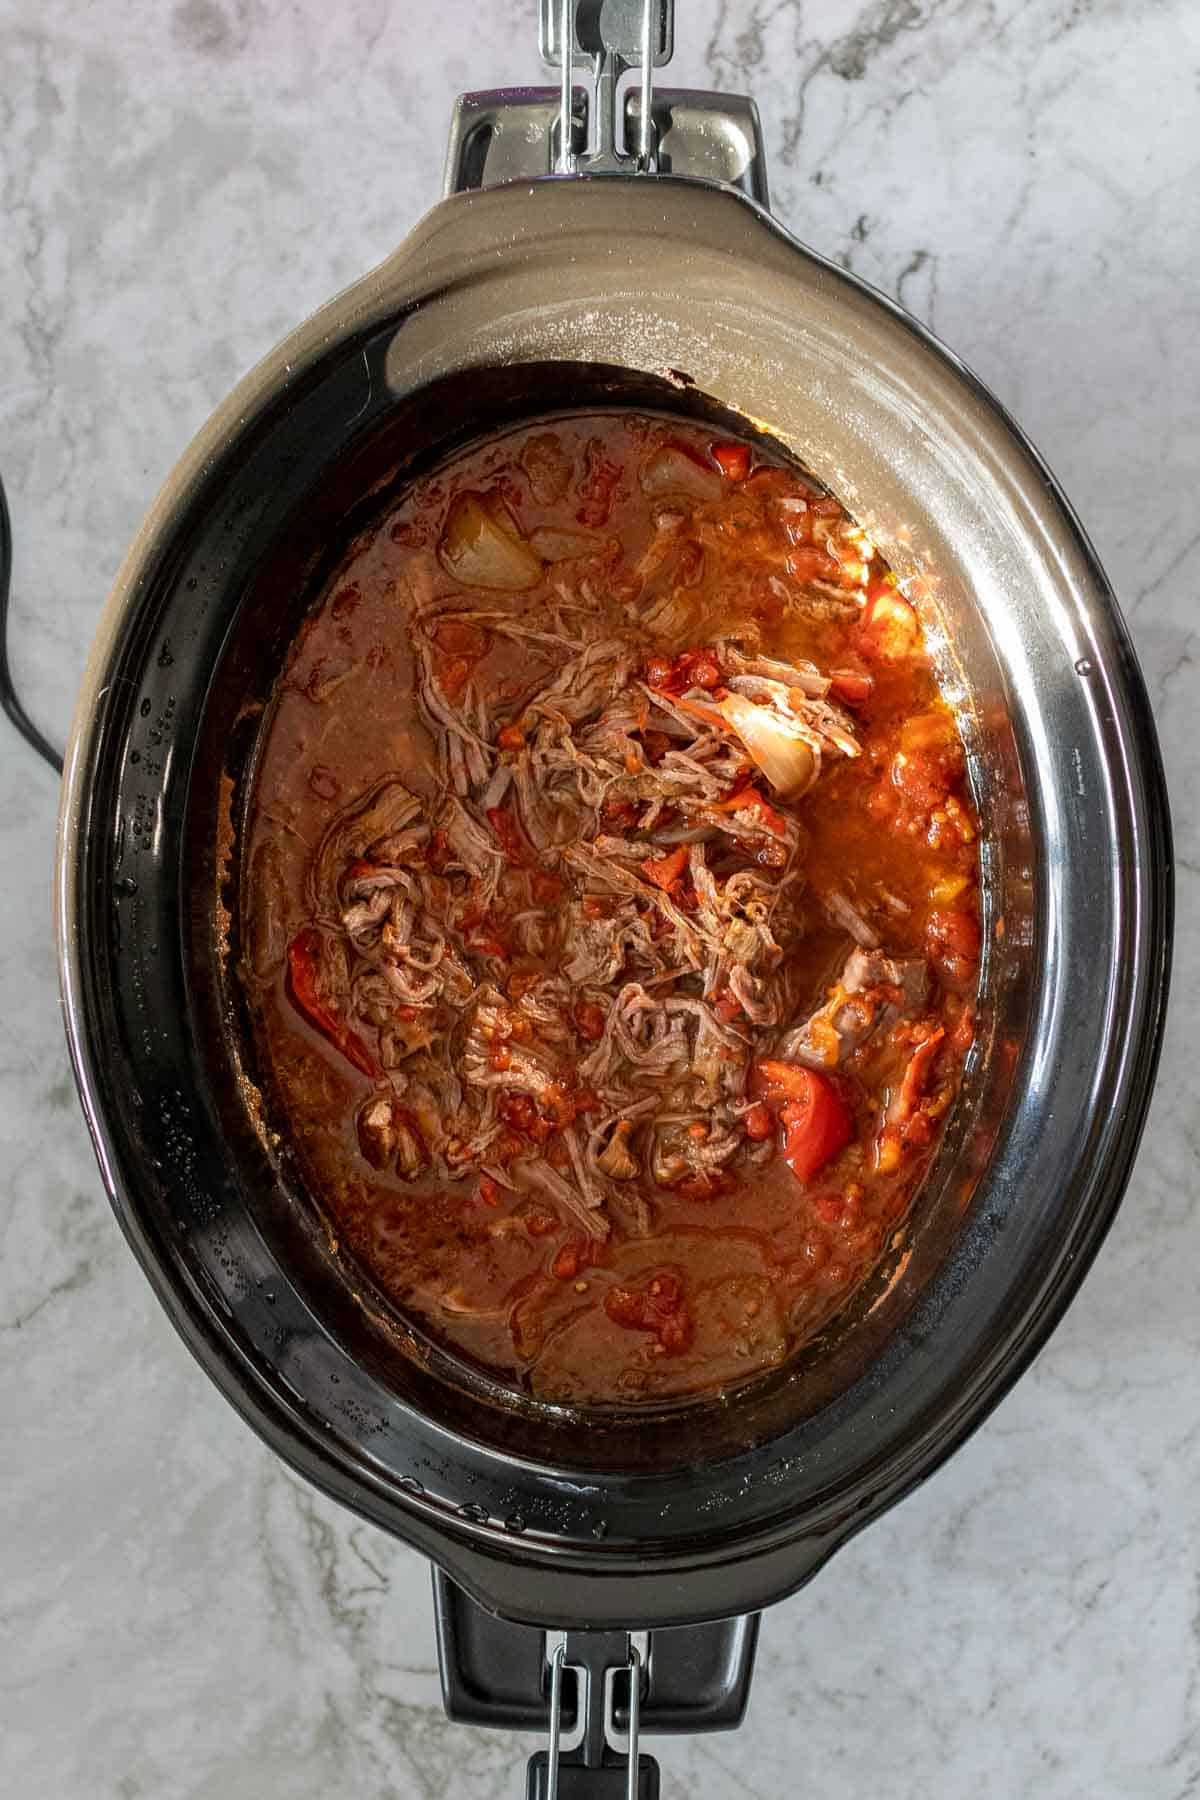 Shredded beef in the slow cooker